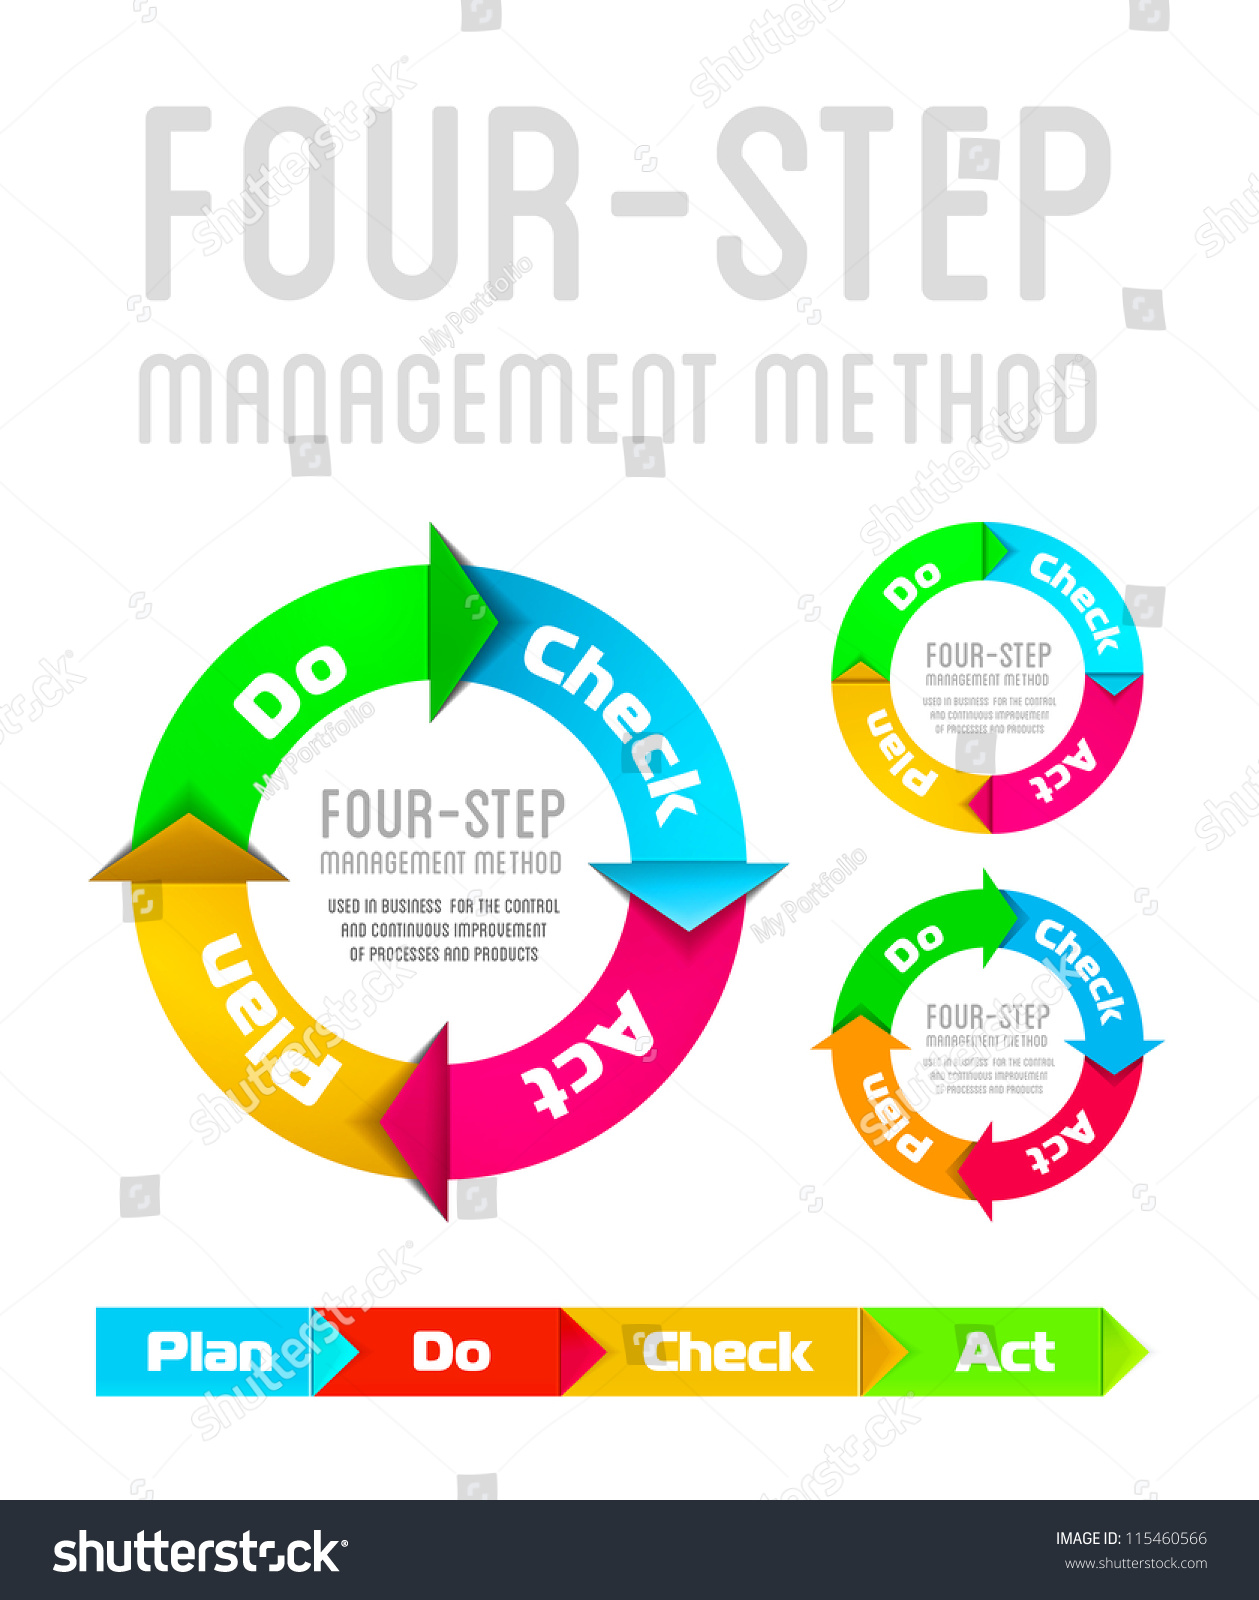 Quality Management System Plan Do Check Act Circle Isolated On White Stock Vector Illustration